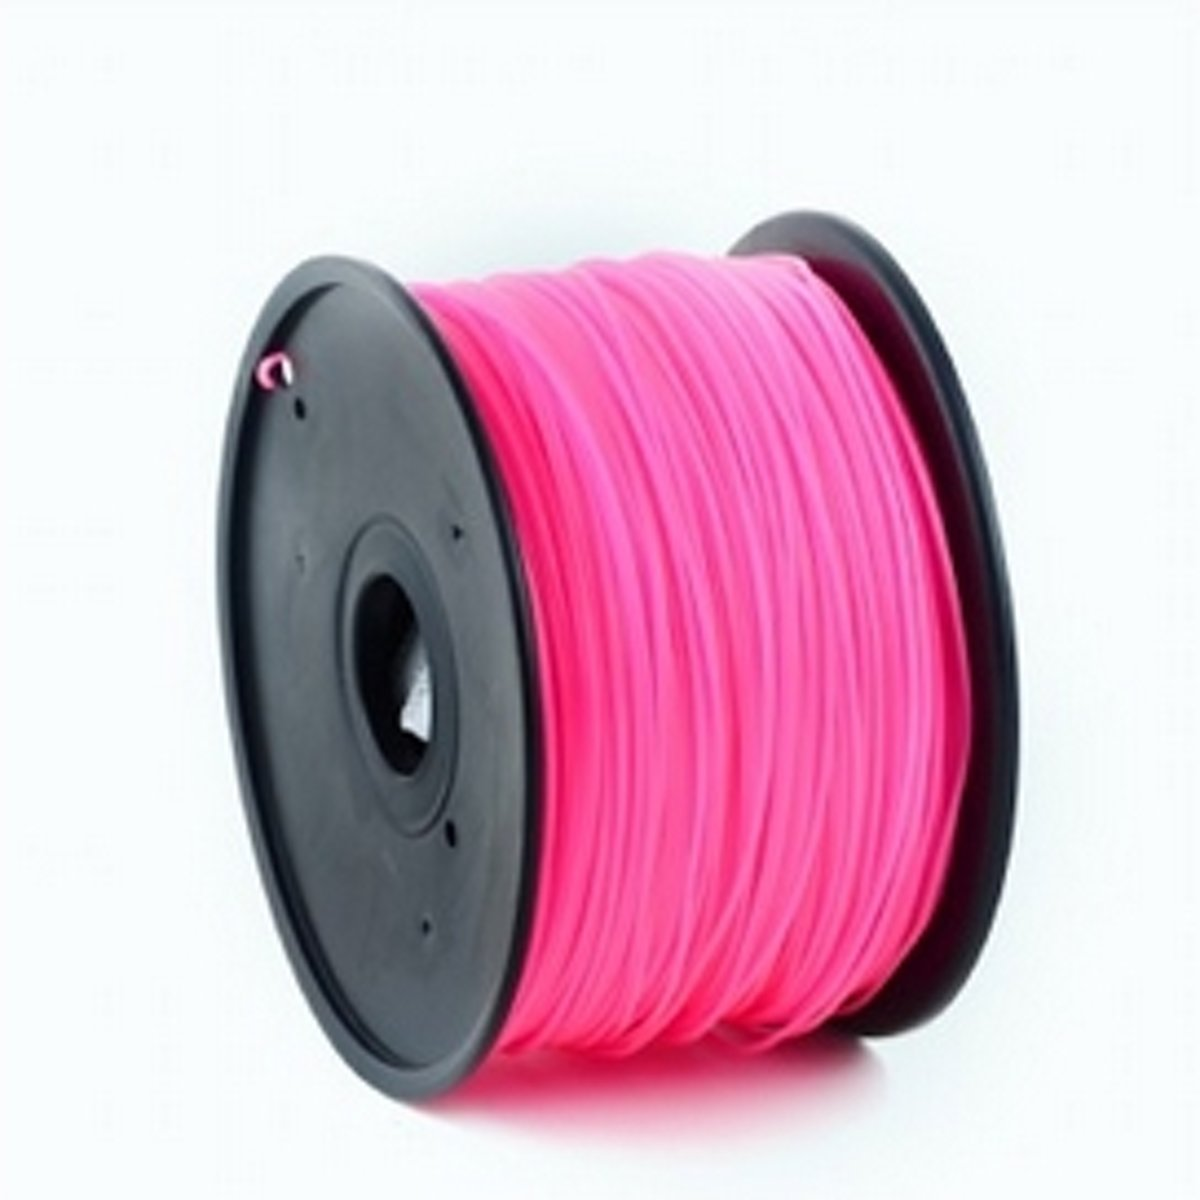 Gembird3 3DP-PLA3-01-P - Filament PLA, 3 mm, roze